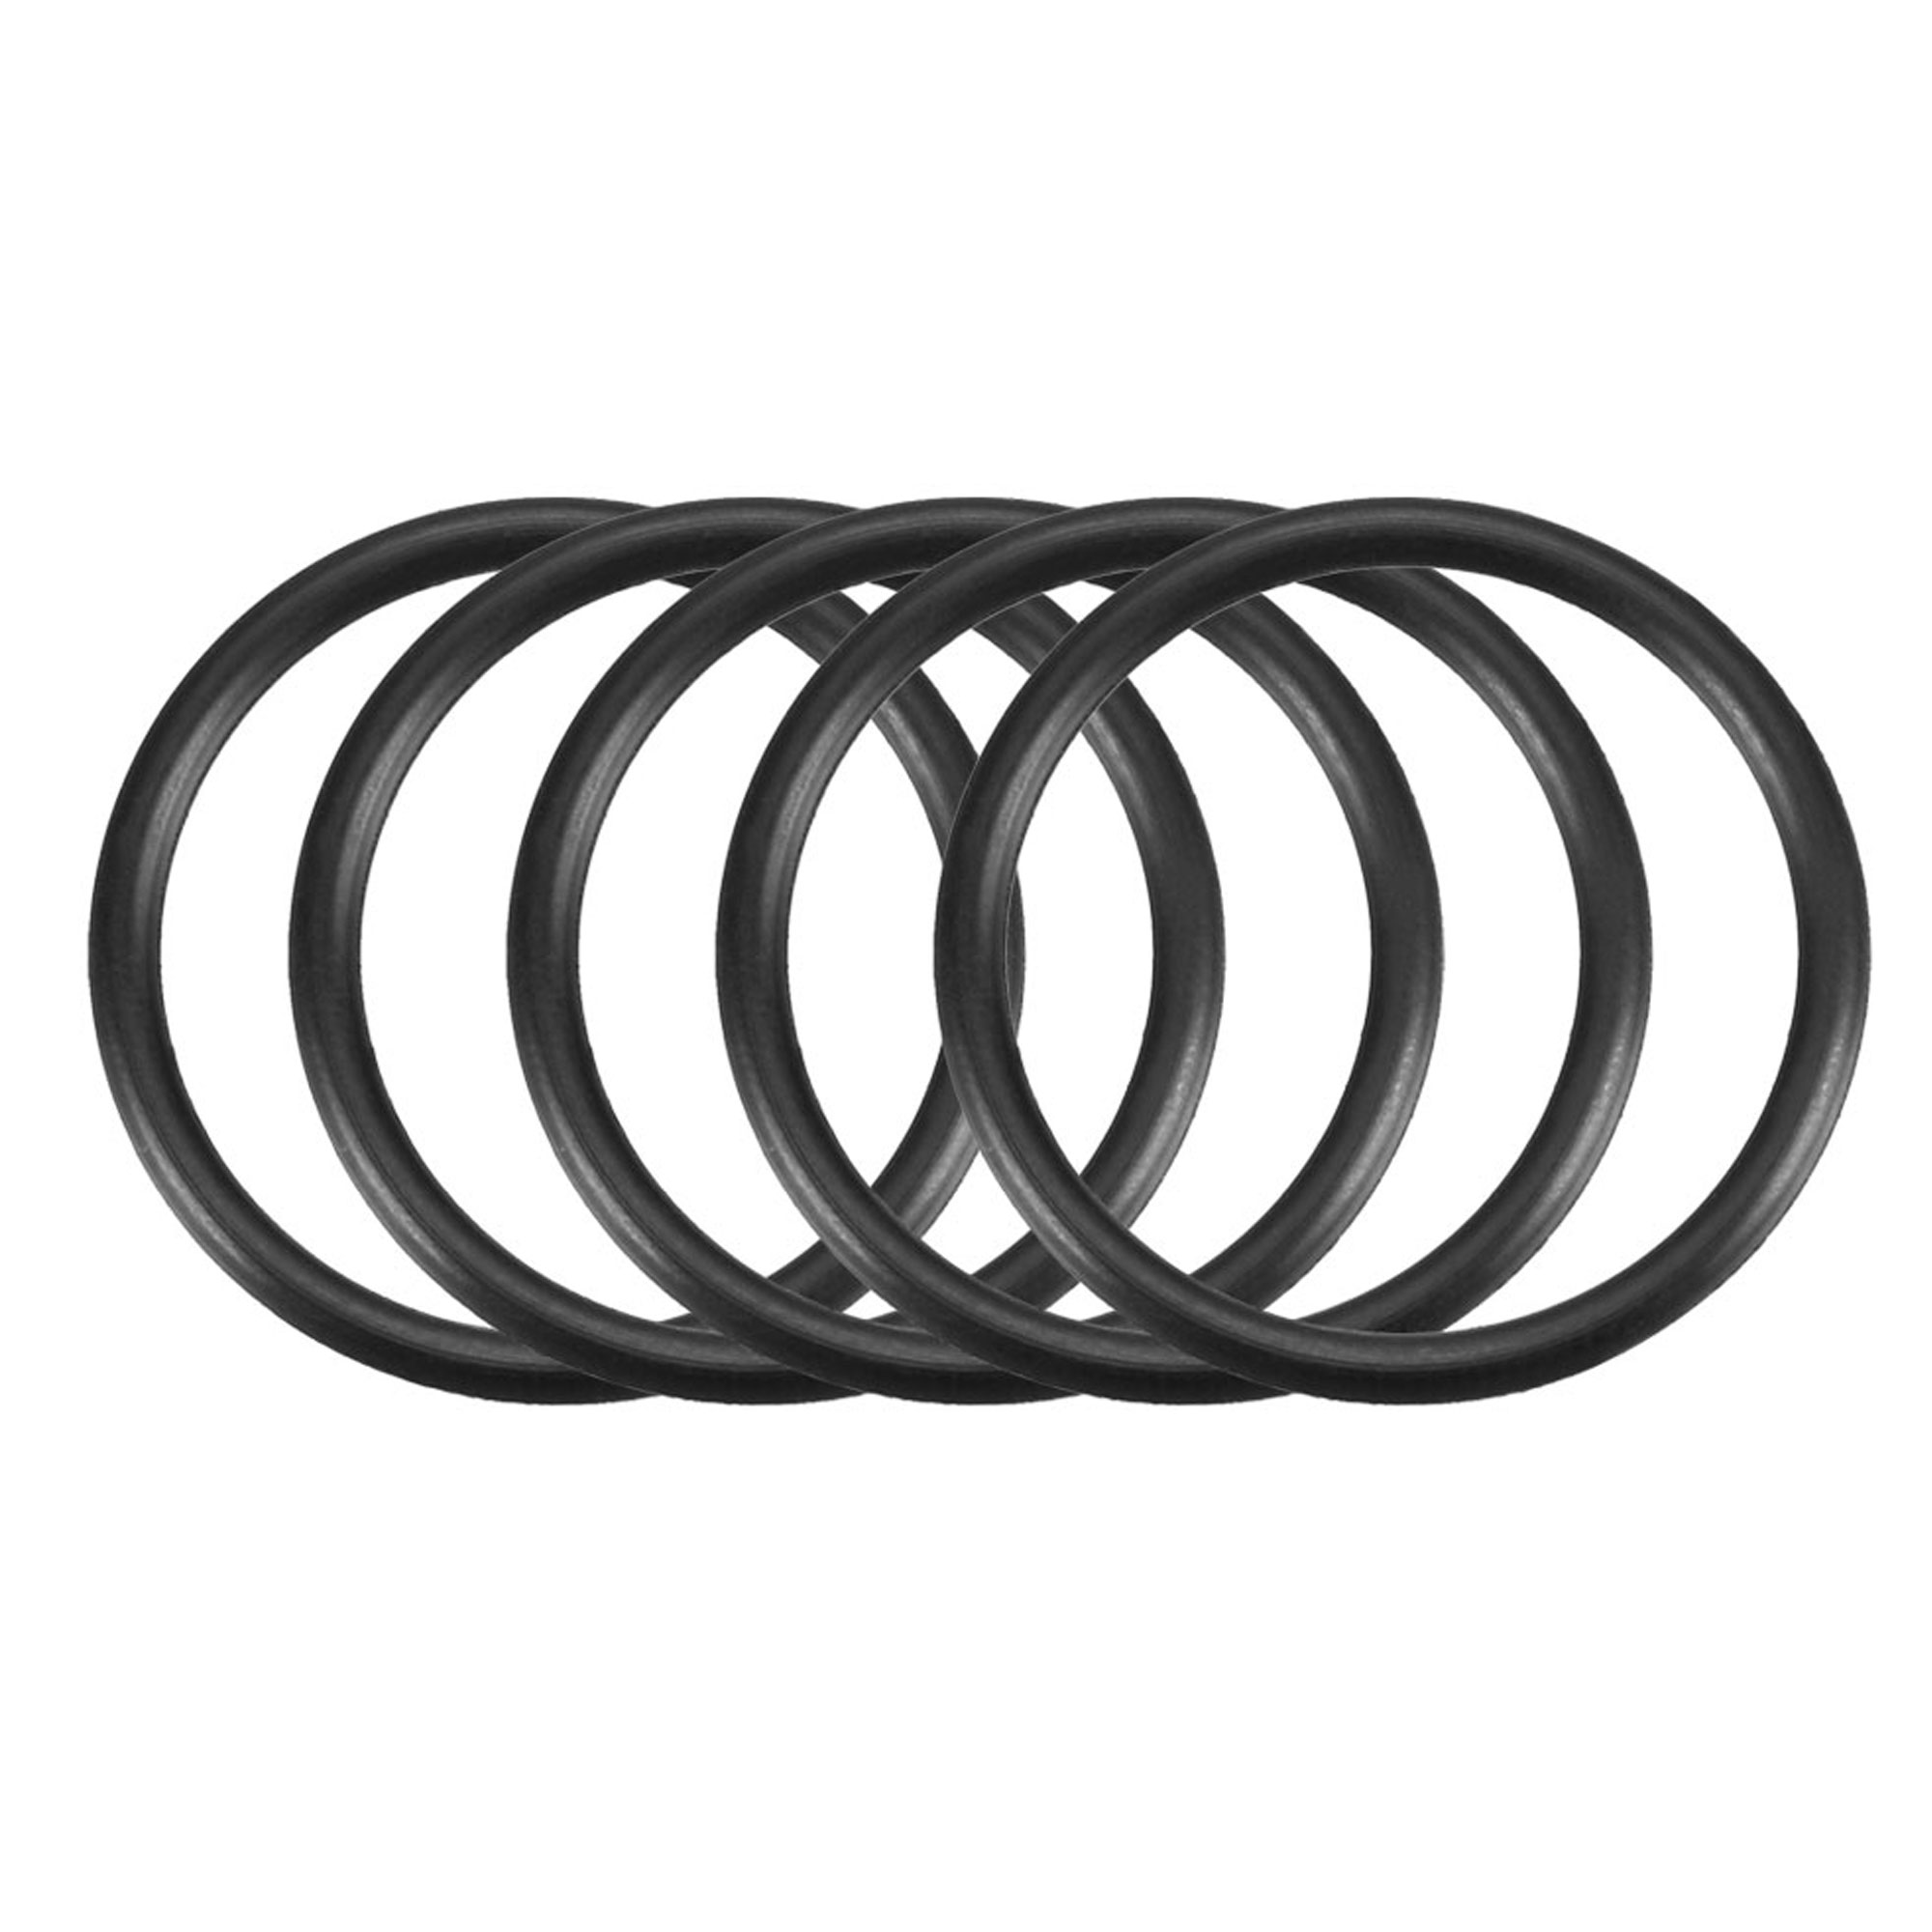 50Pcs 26mm x 1.9mm Black Flexible Nitrile Rubber O Ring Oil Seal Washer Grommets